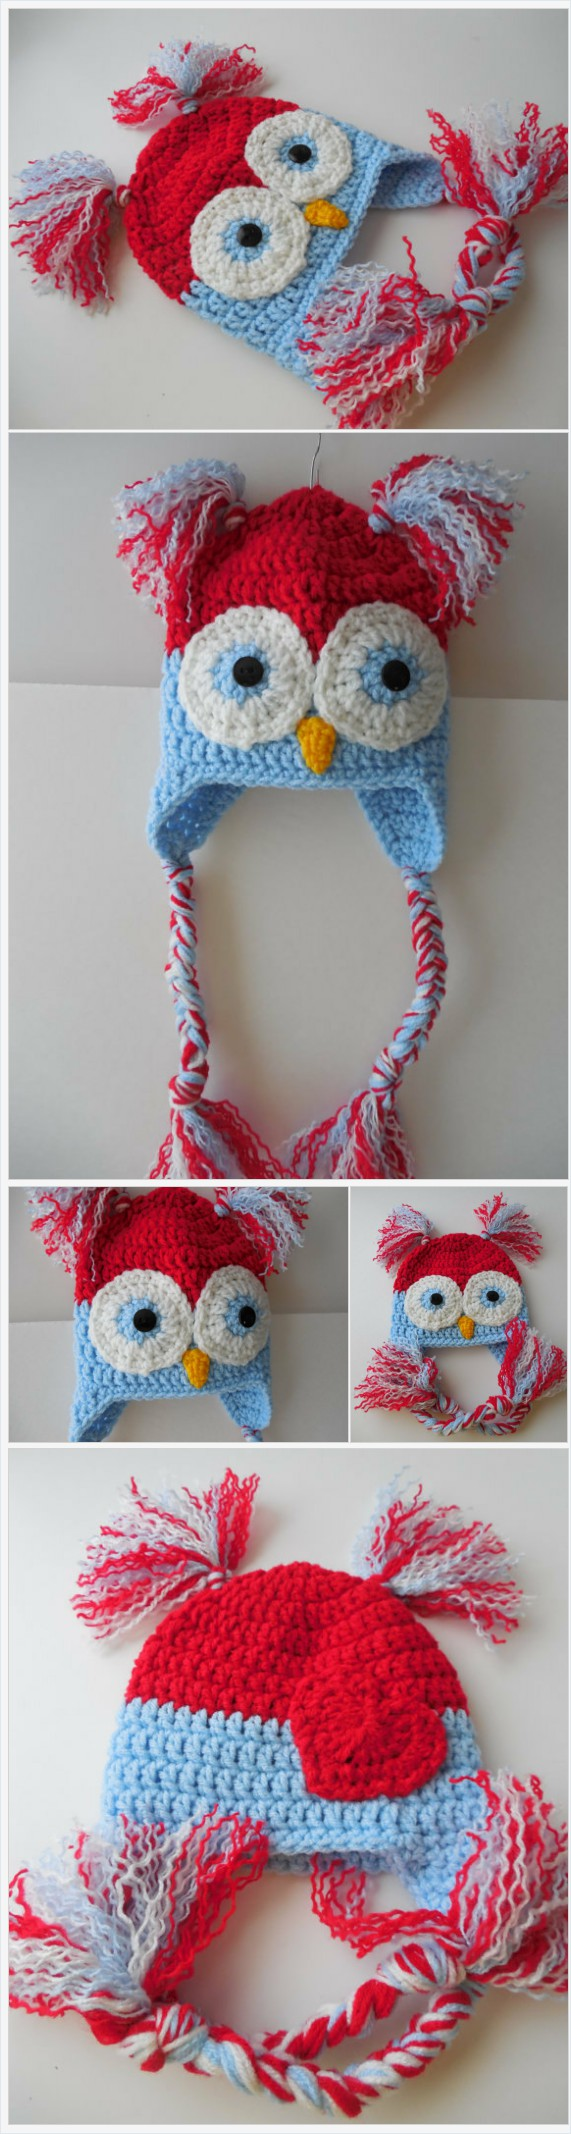 Crochet Owl Hat - Red White and Blue -Baby to Adult Sizes - Earflap ...